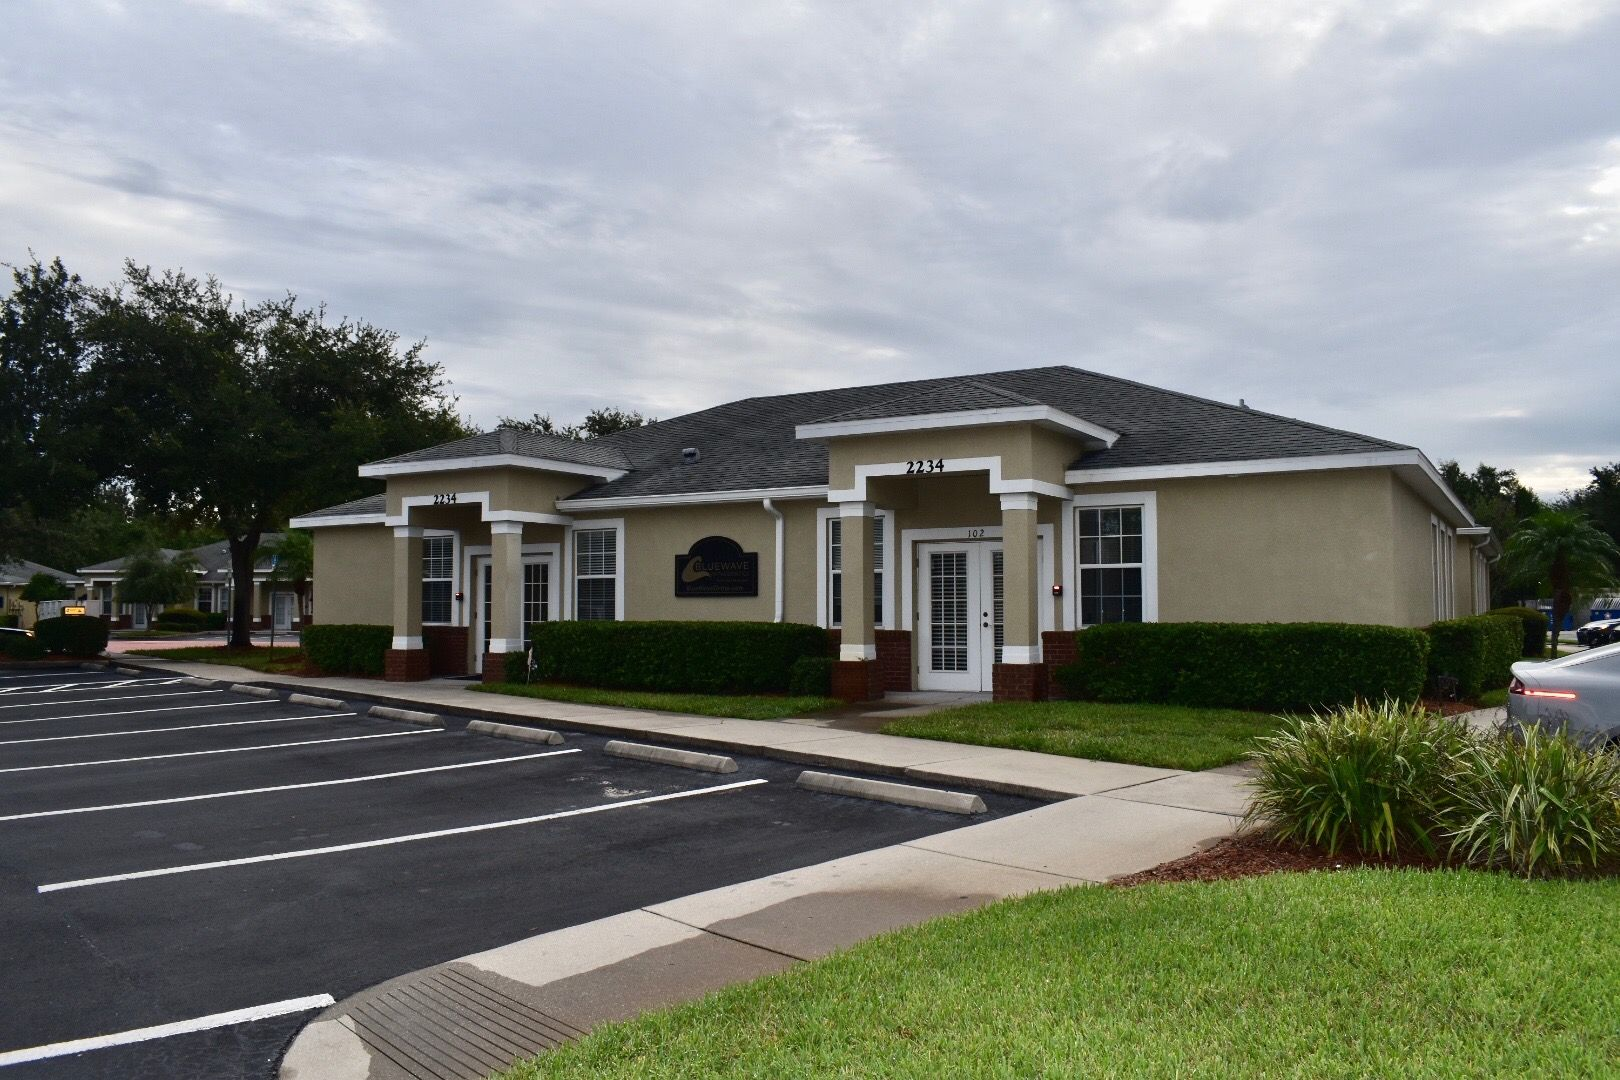 Picture of Blue Wave Orthodontics office in Wesley Chapel office.